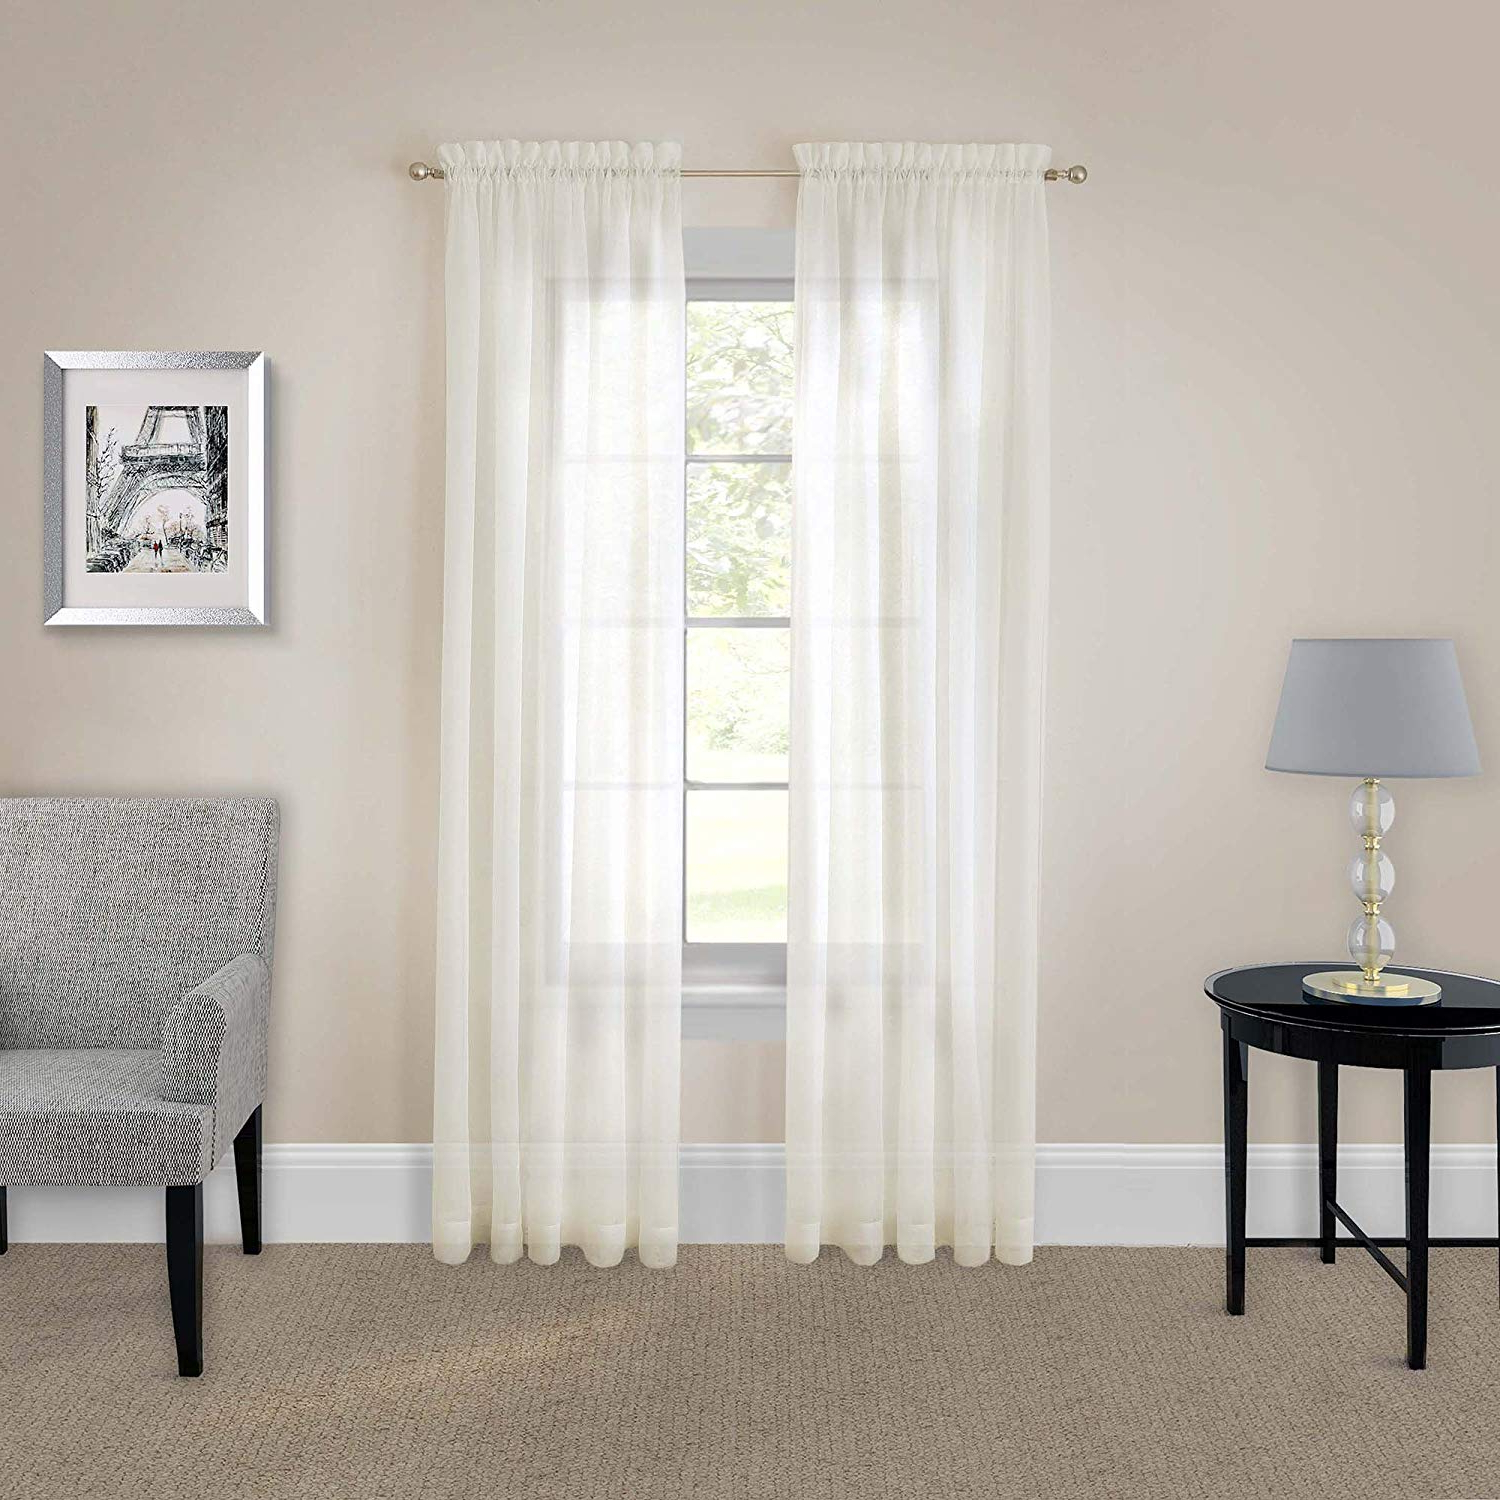 Preferred Curtain Panel Pairs In Pairs To Go 16005118x084ivy Victoria Voile 118 Inch84 Inch Window Panel  Pair, Ivory (View 20 of 20)